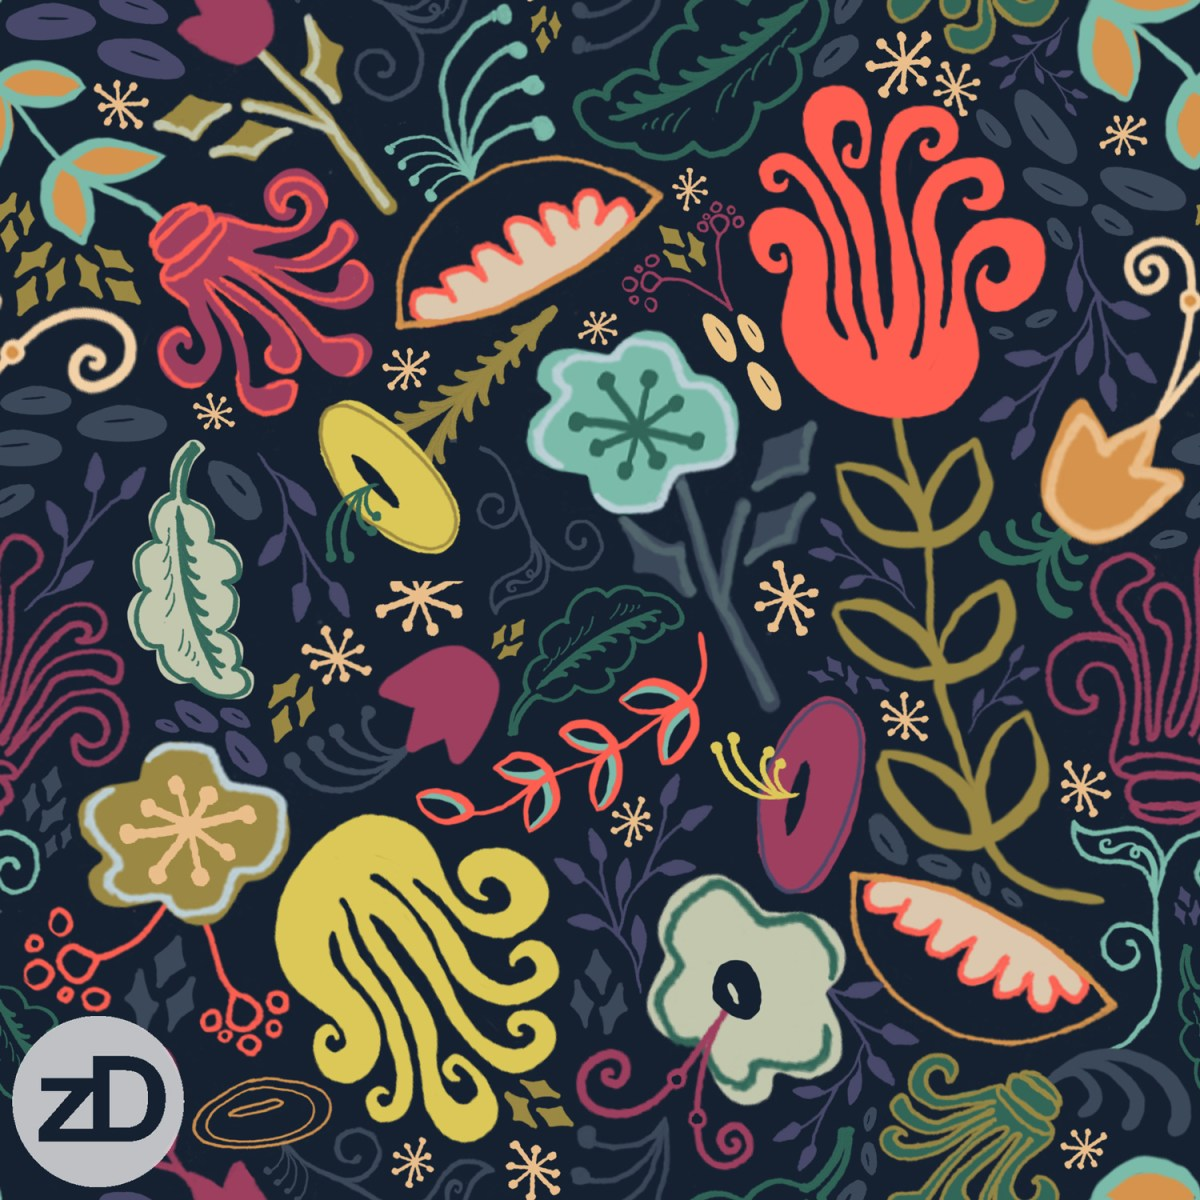 Zirkus Design | New Navy Vintage Floral Pattern - Design Process: Finished Repeat Pattern Design